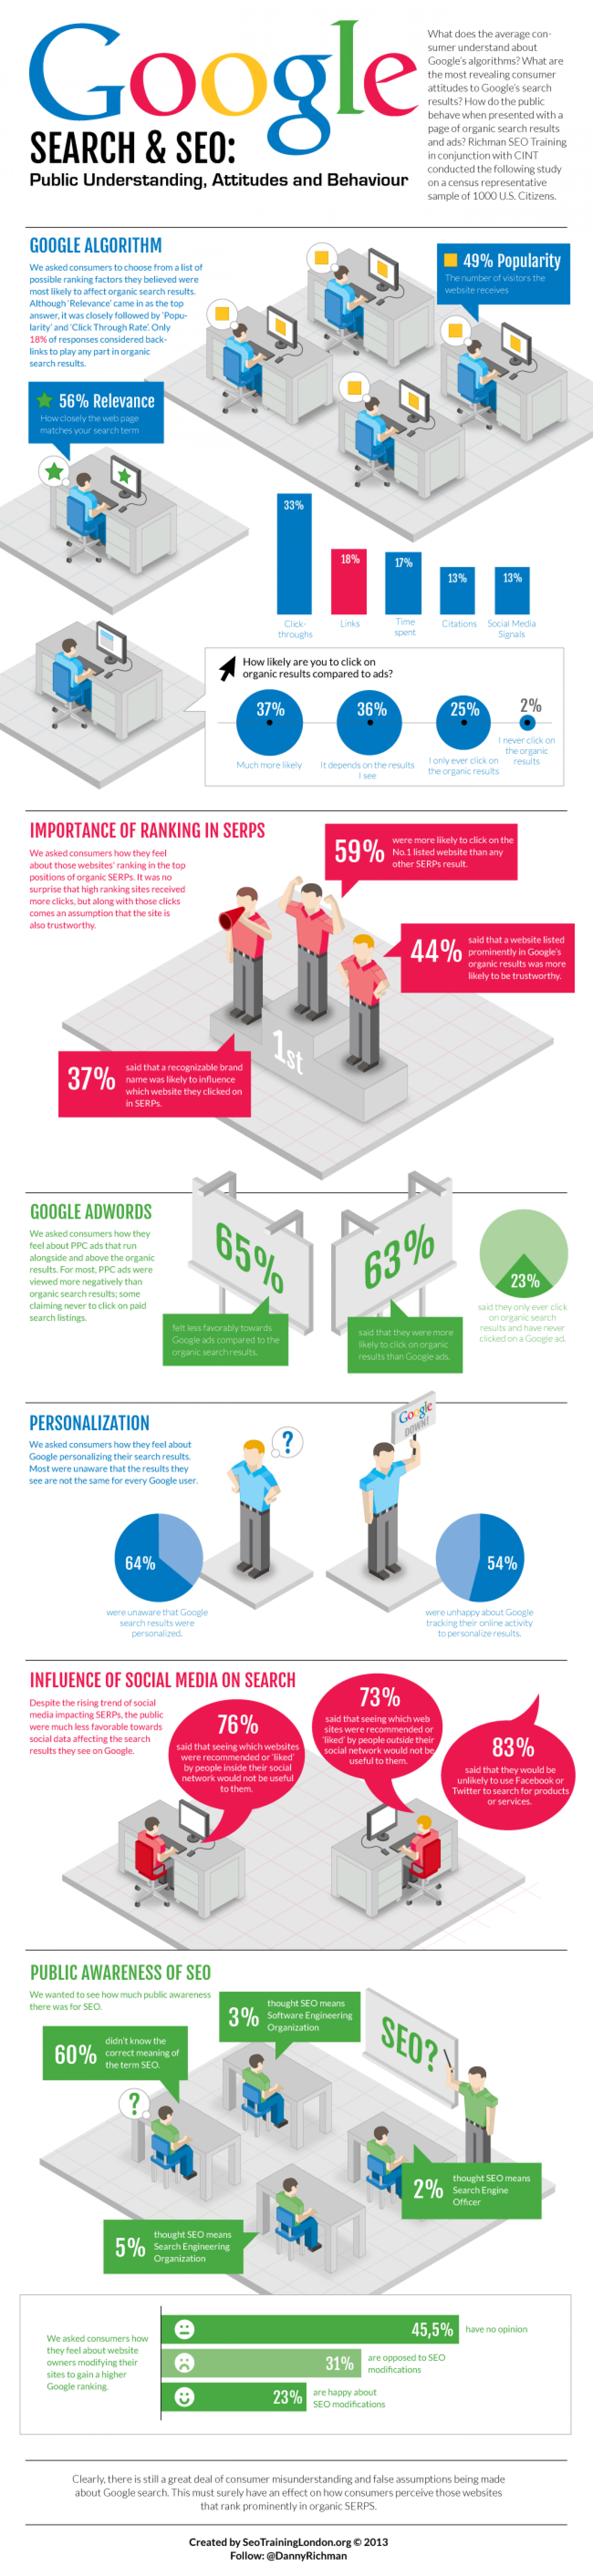 Google Search And SEO Infographic